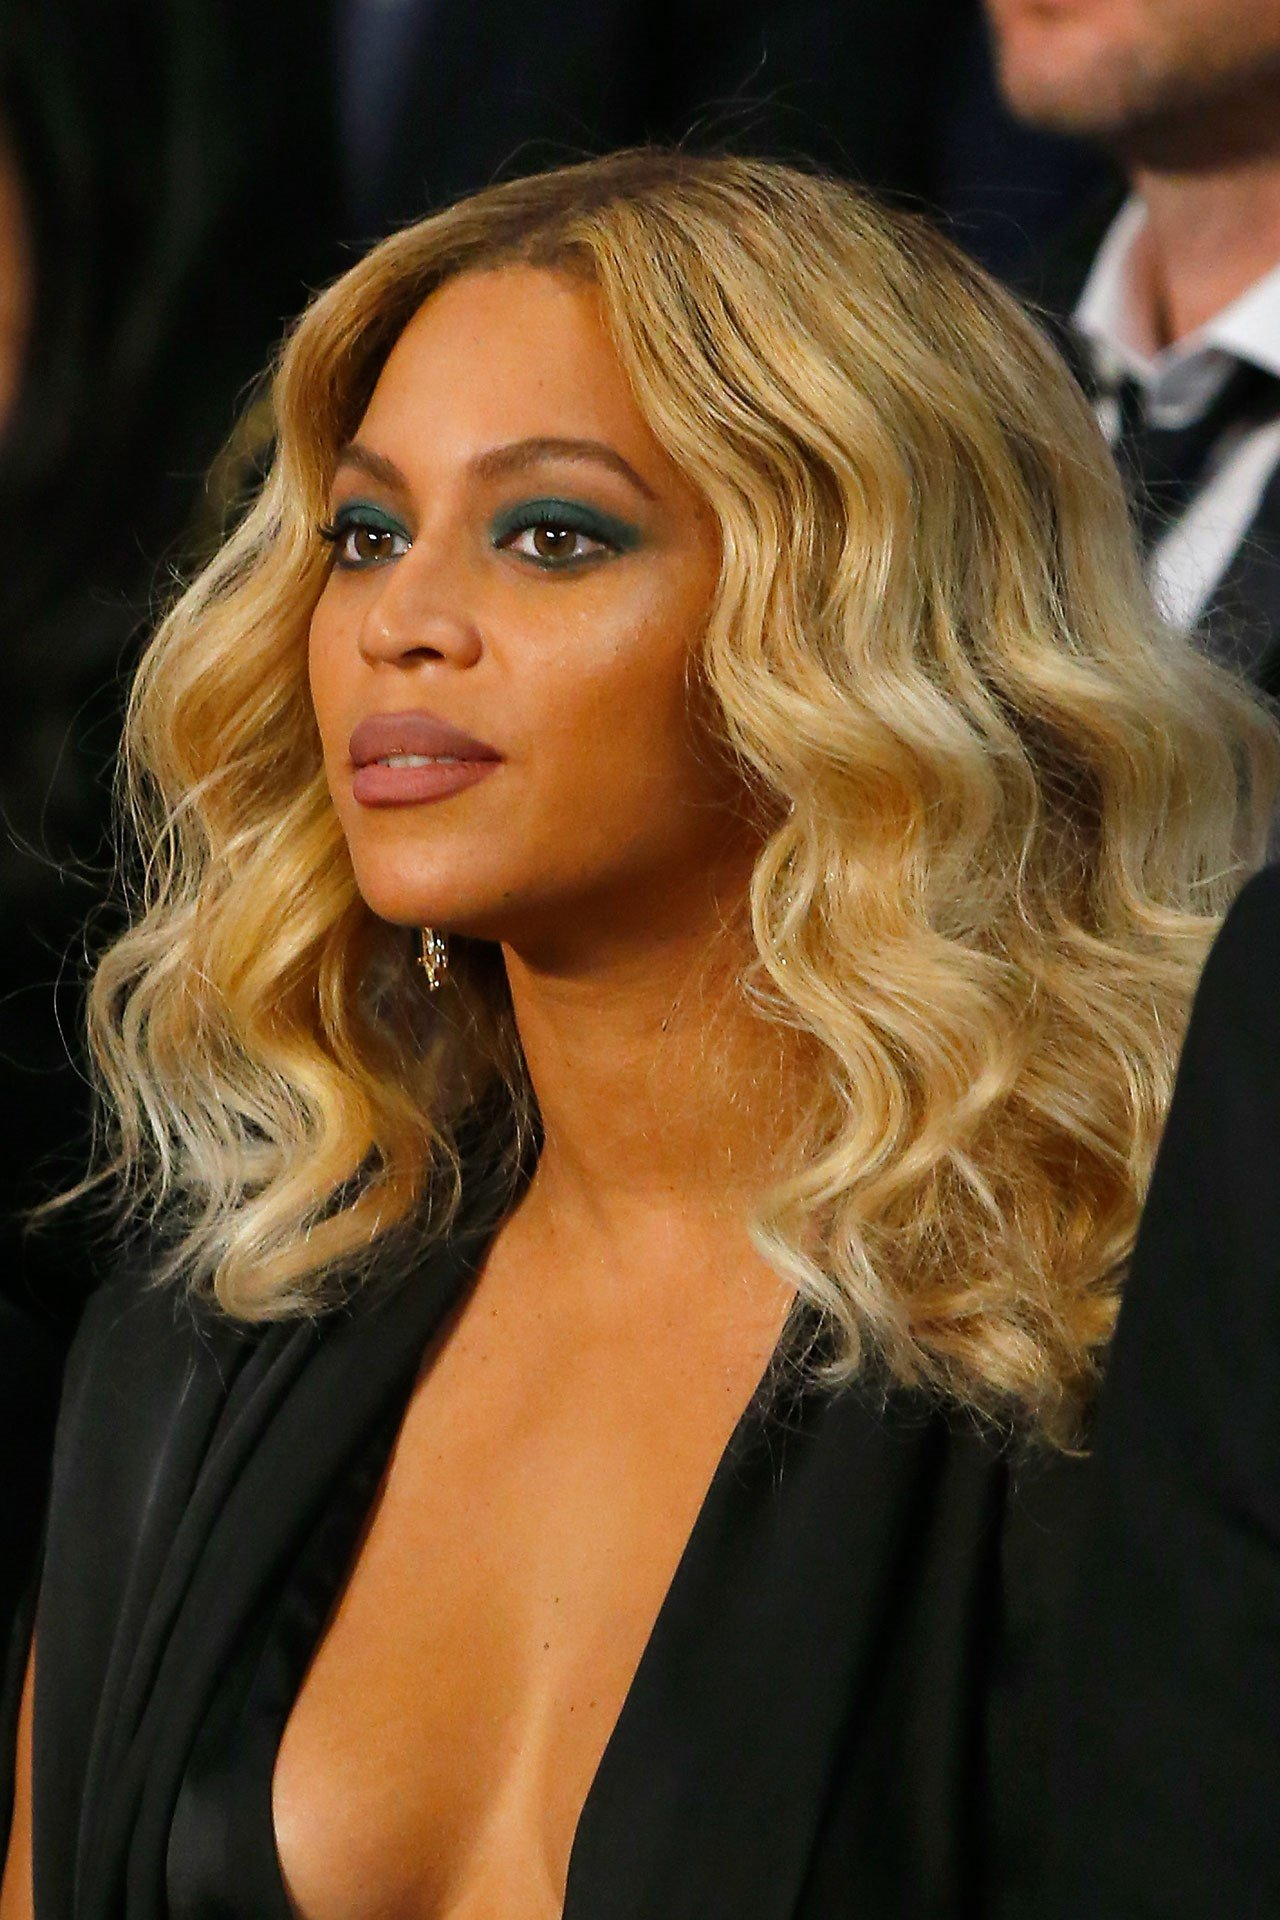 Bored? Browse the @Beyonce hair style file: https://t.co/xgv7ZigKBs https://t.co/J5VScCTh4D